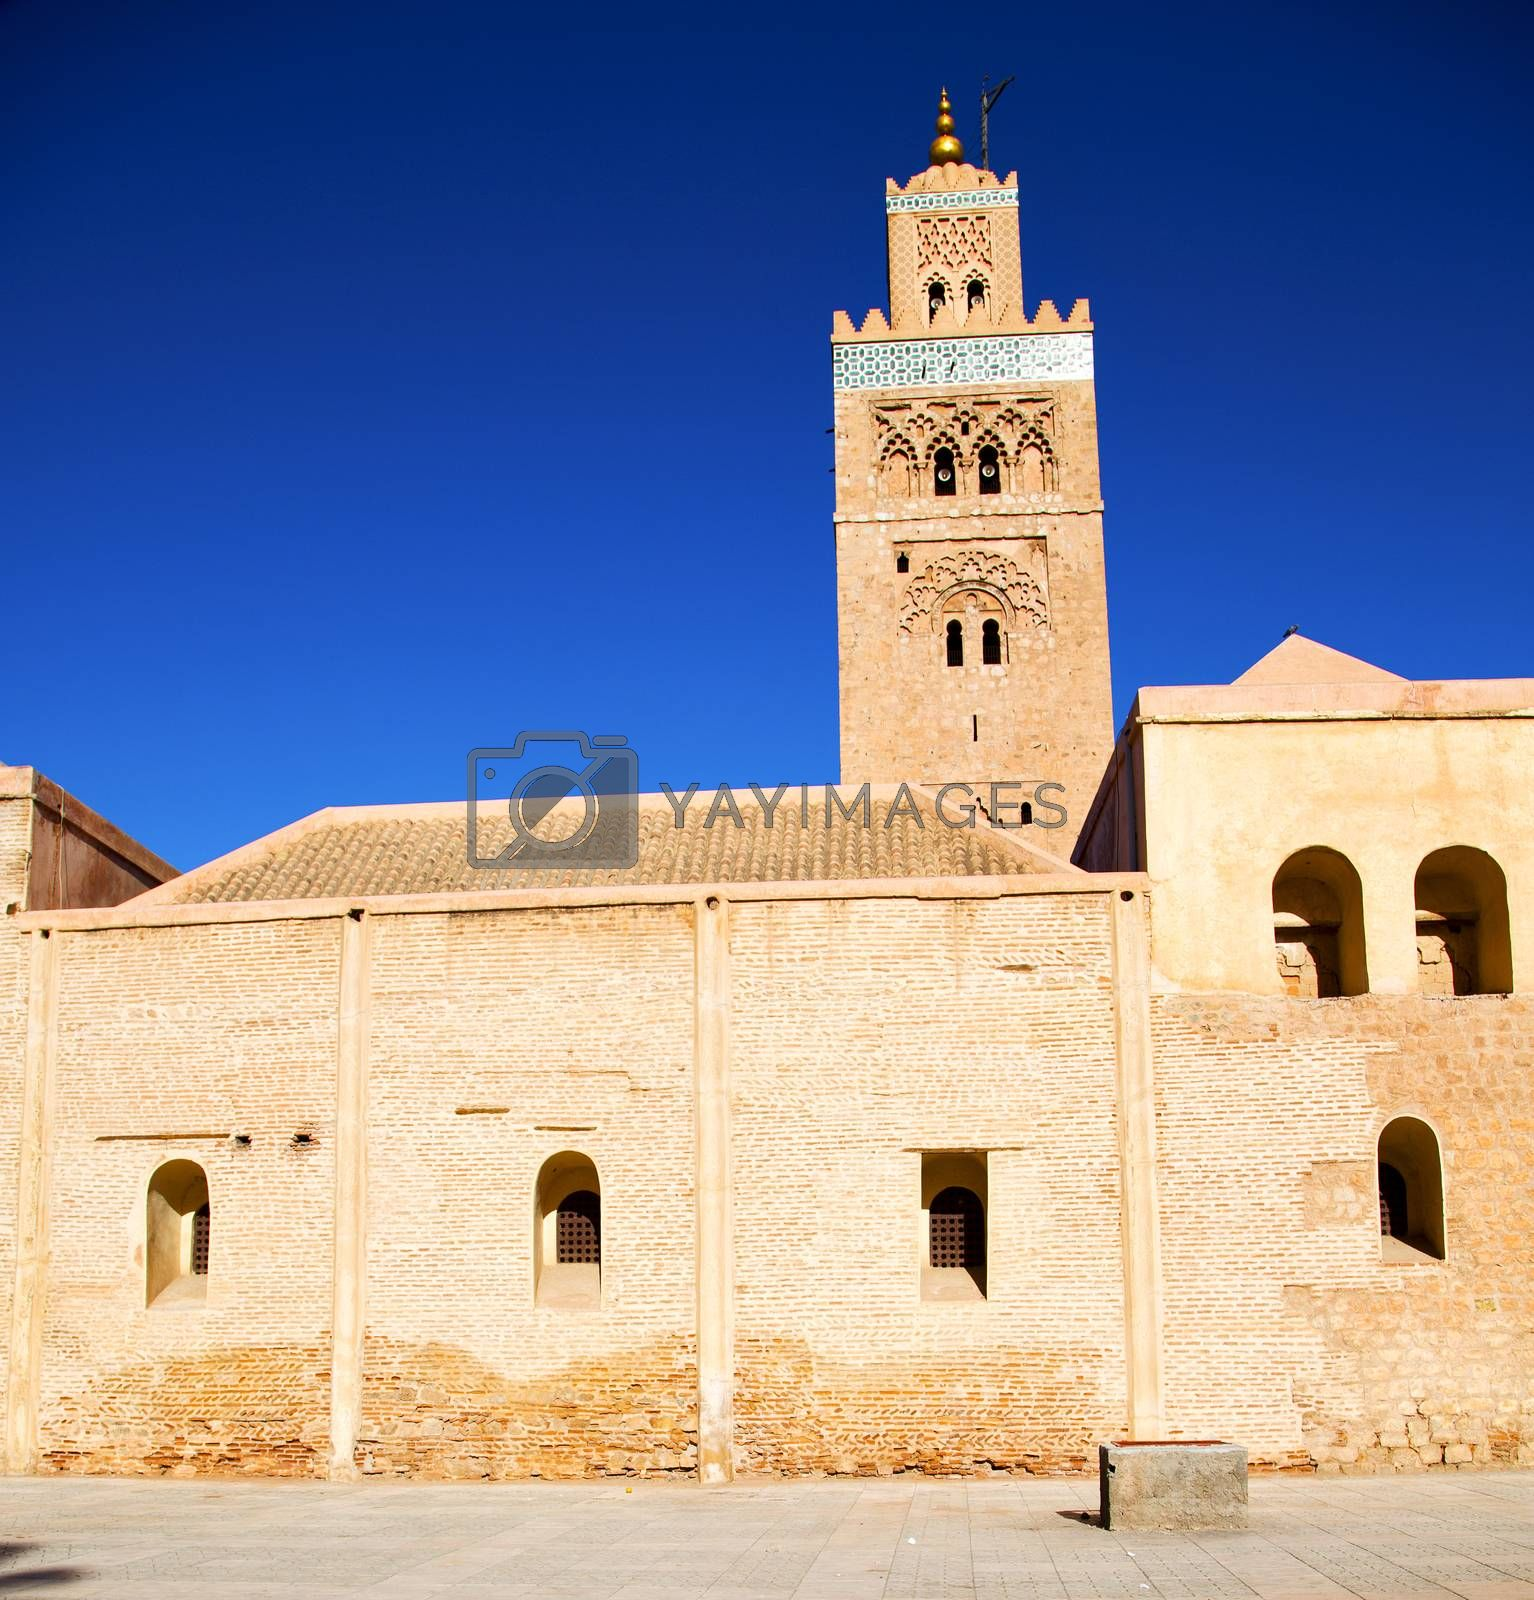 history in maroc africa  minaret religion and the blue     sky by lkpro